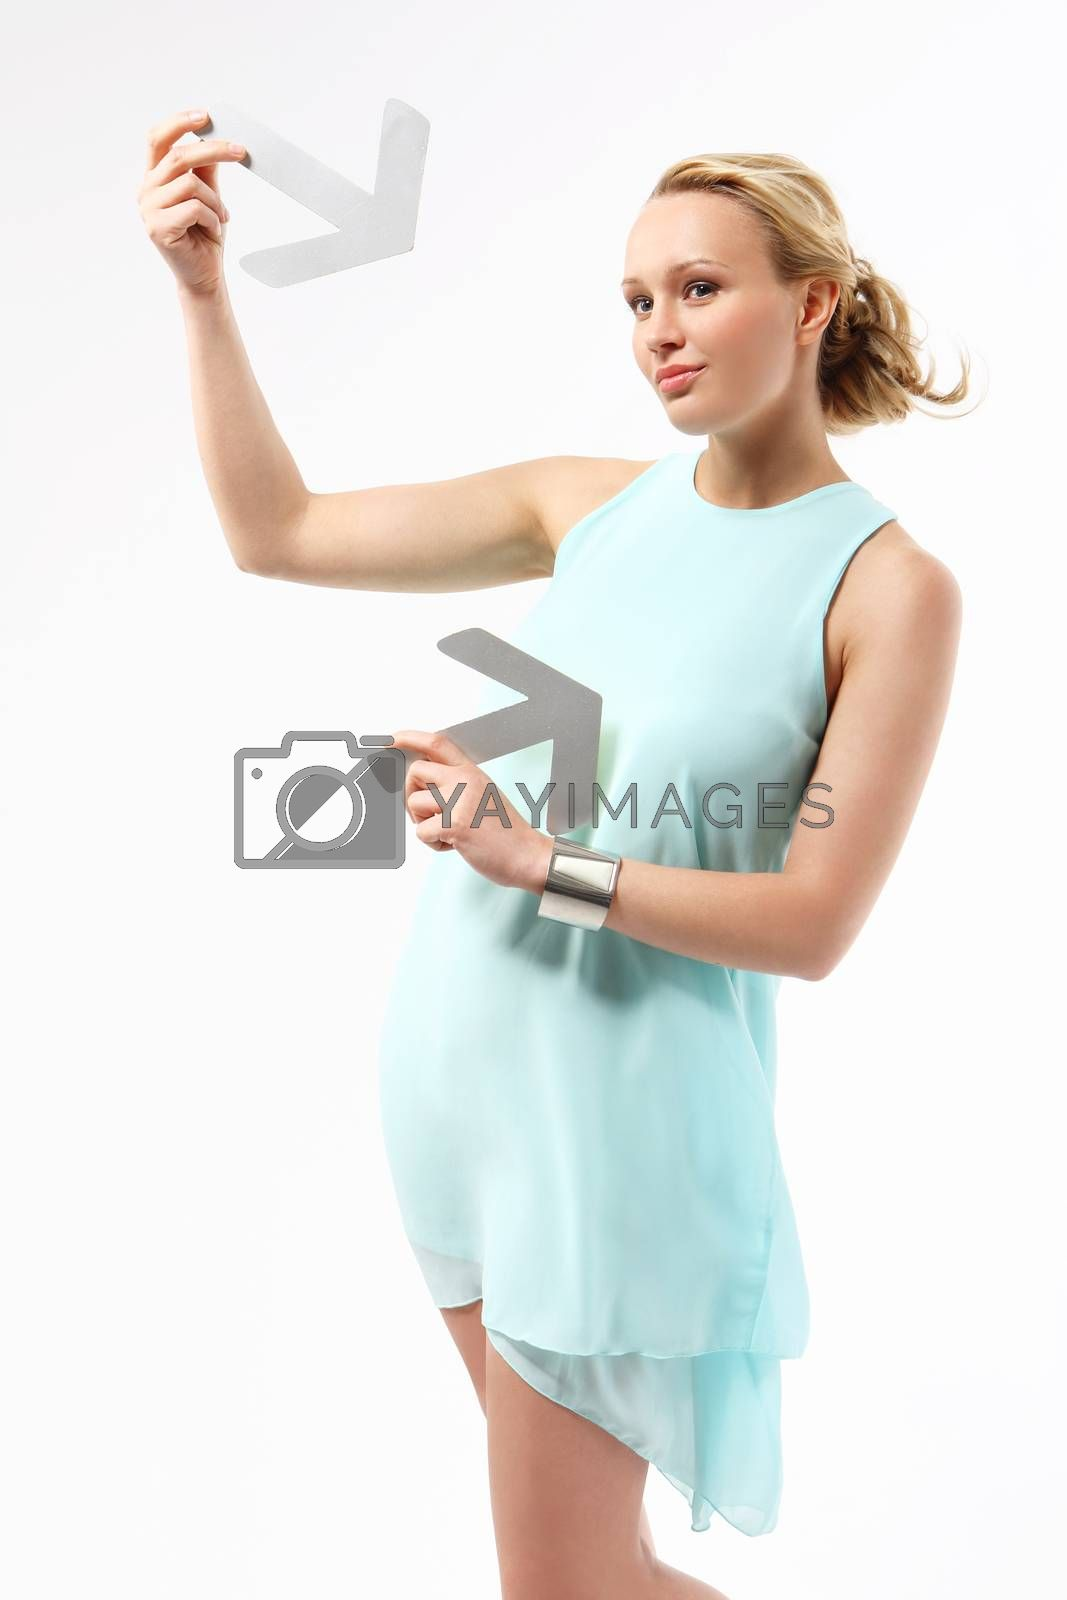 Elegant young woman pointing with silver arrows.